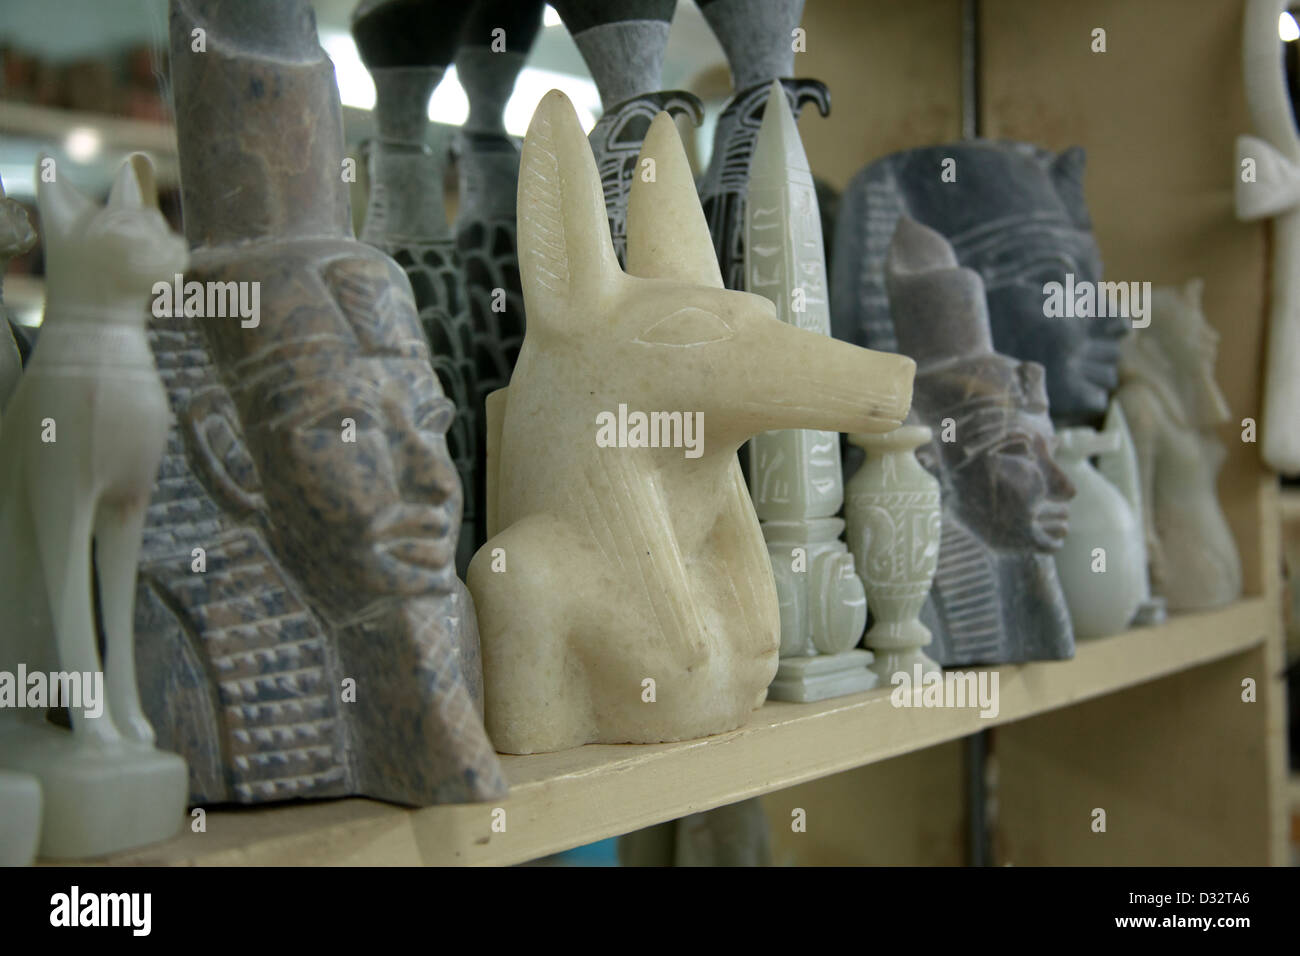 Stone carving zimbabwe stone sculpture taxidermy mounts for sale